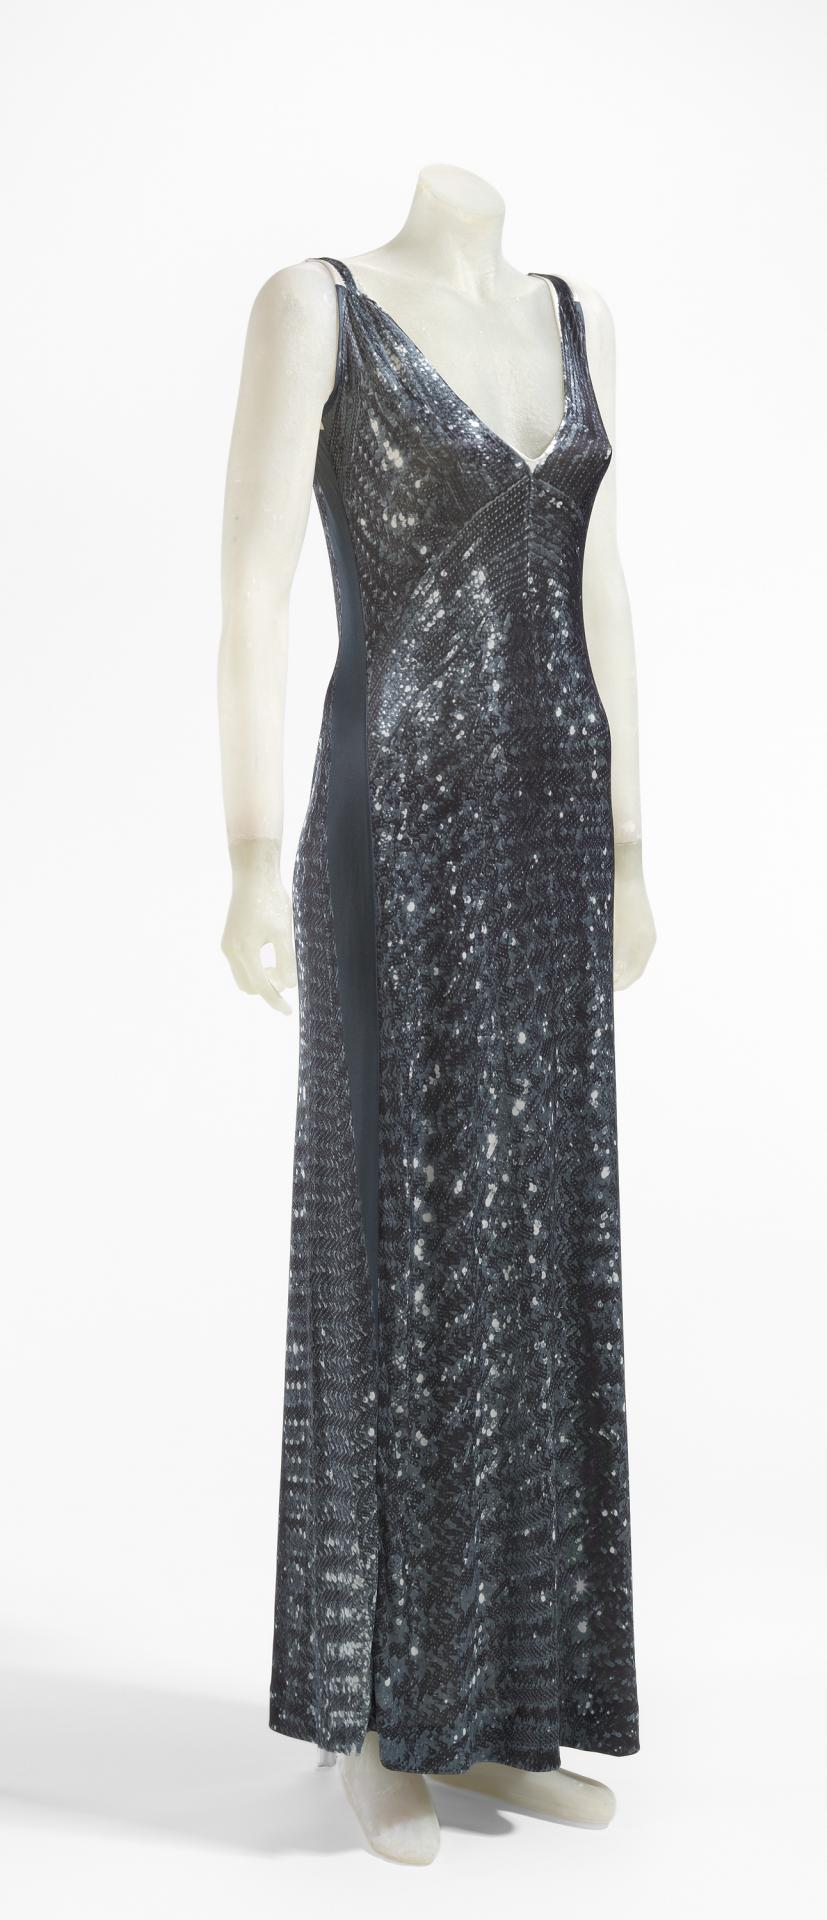 Printed photographic sequin dress